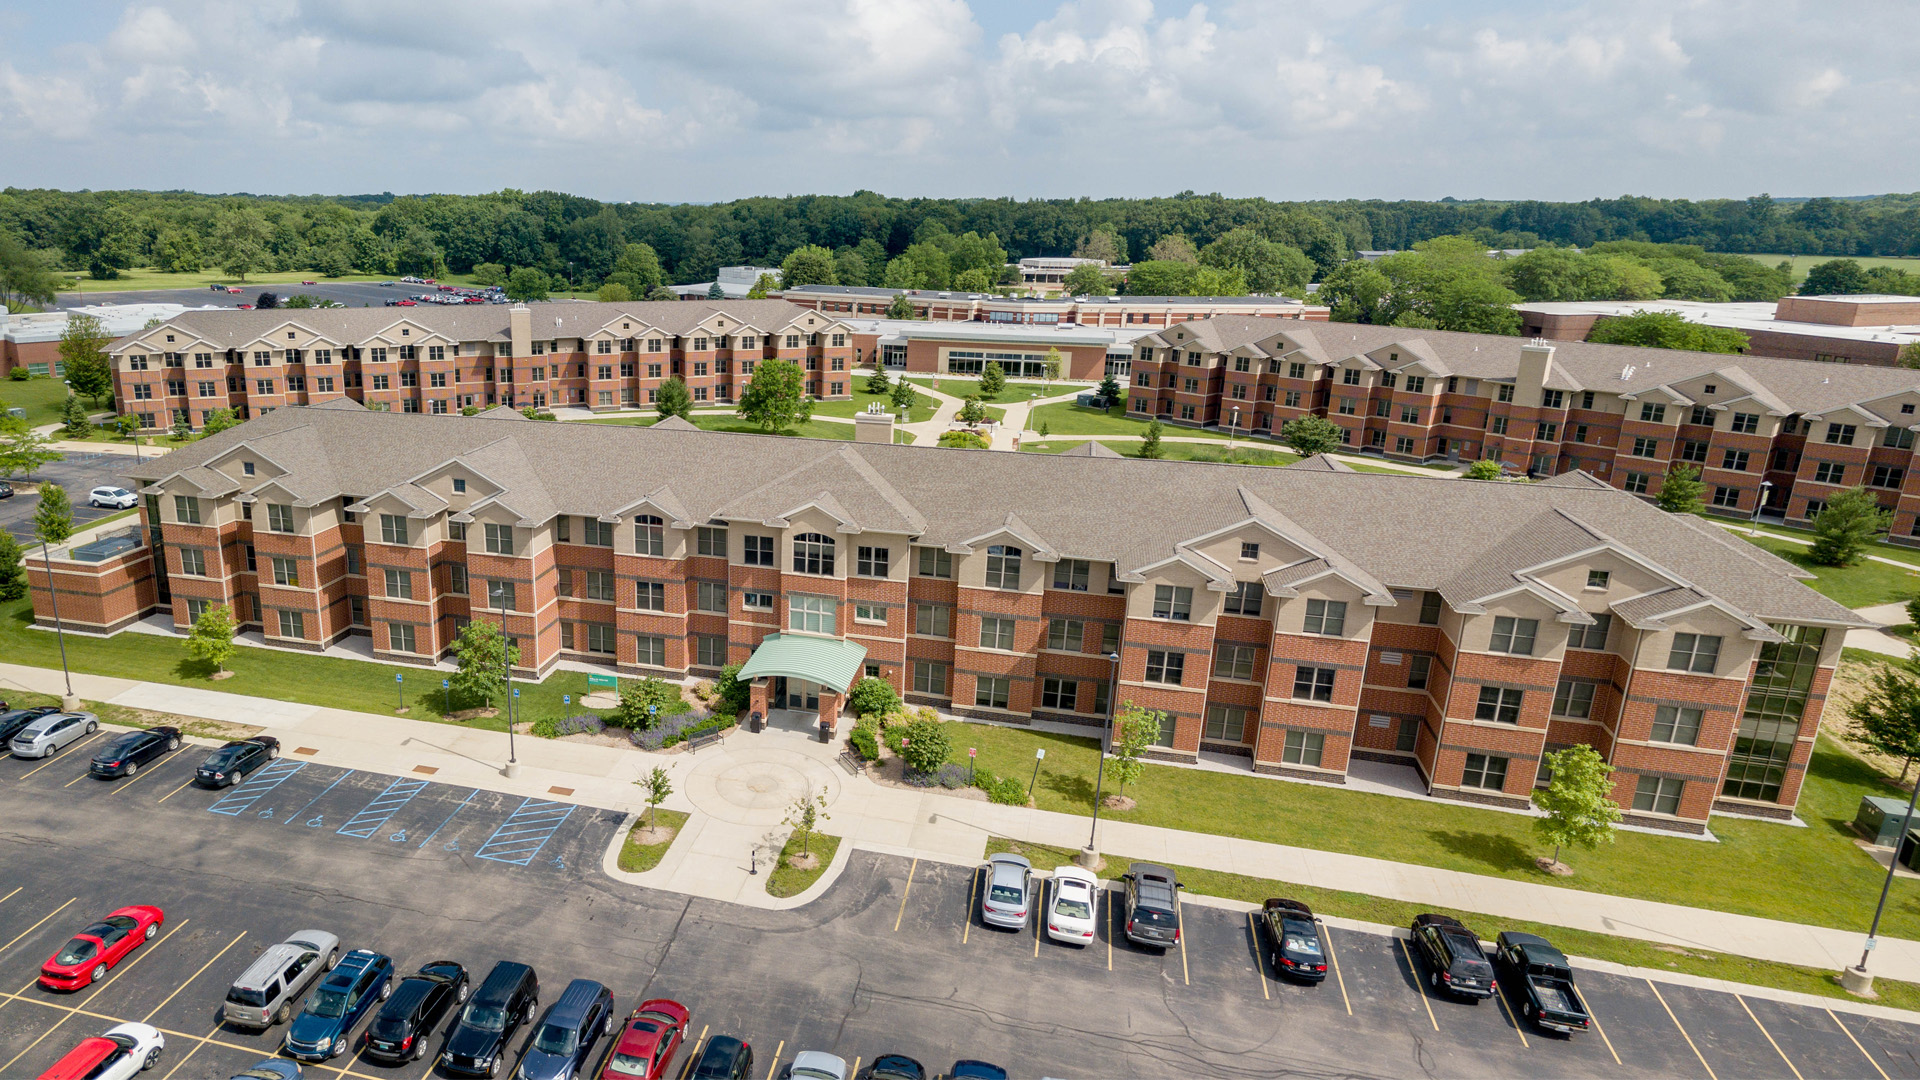 Aerial Photo of Residence Halls on the Dowagiac campus